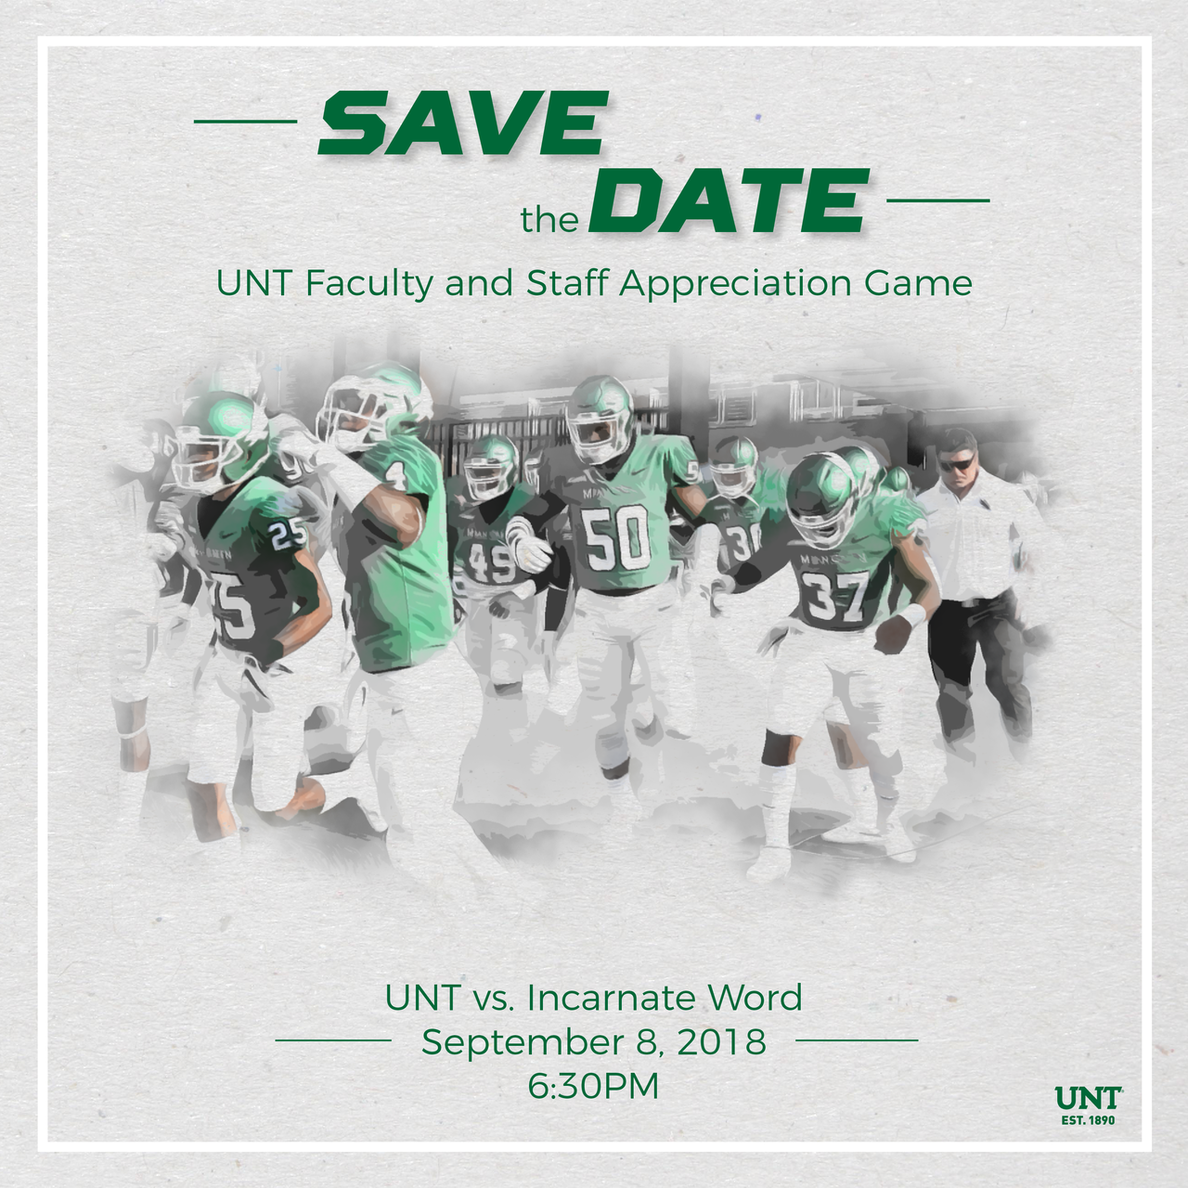 UNT faculty and staff appreciation game Sept. 8